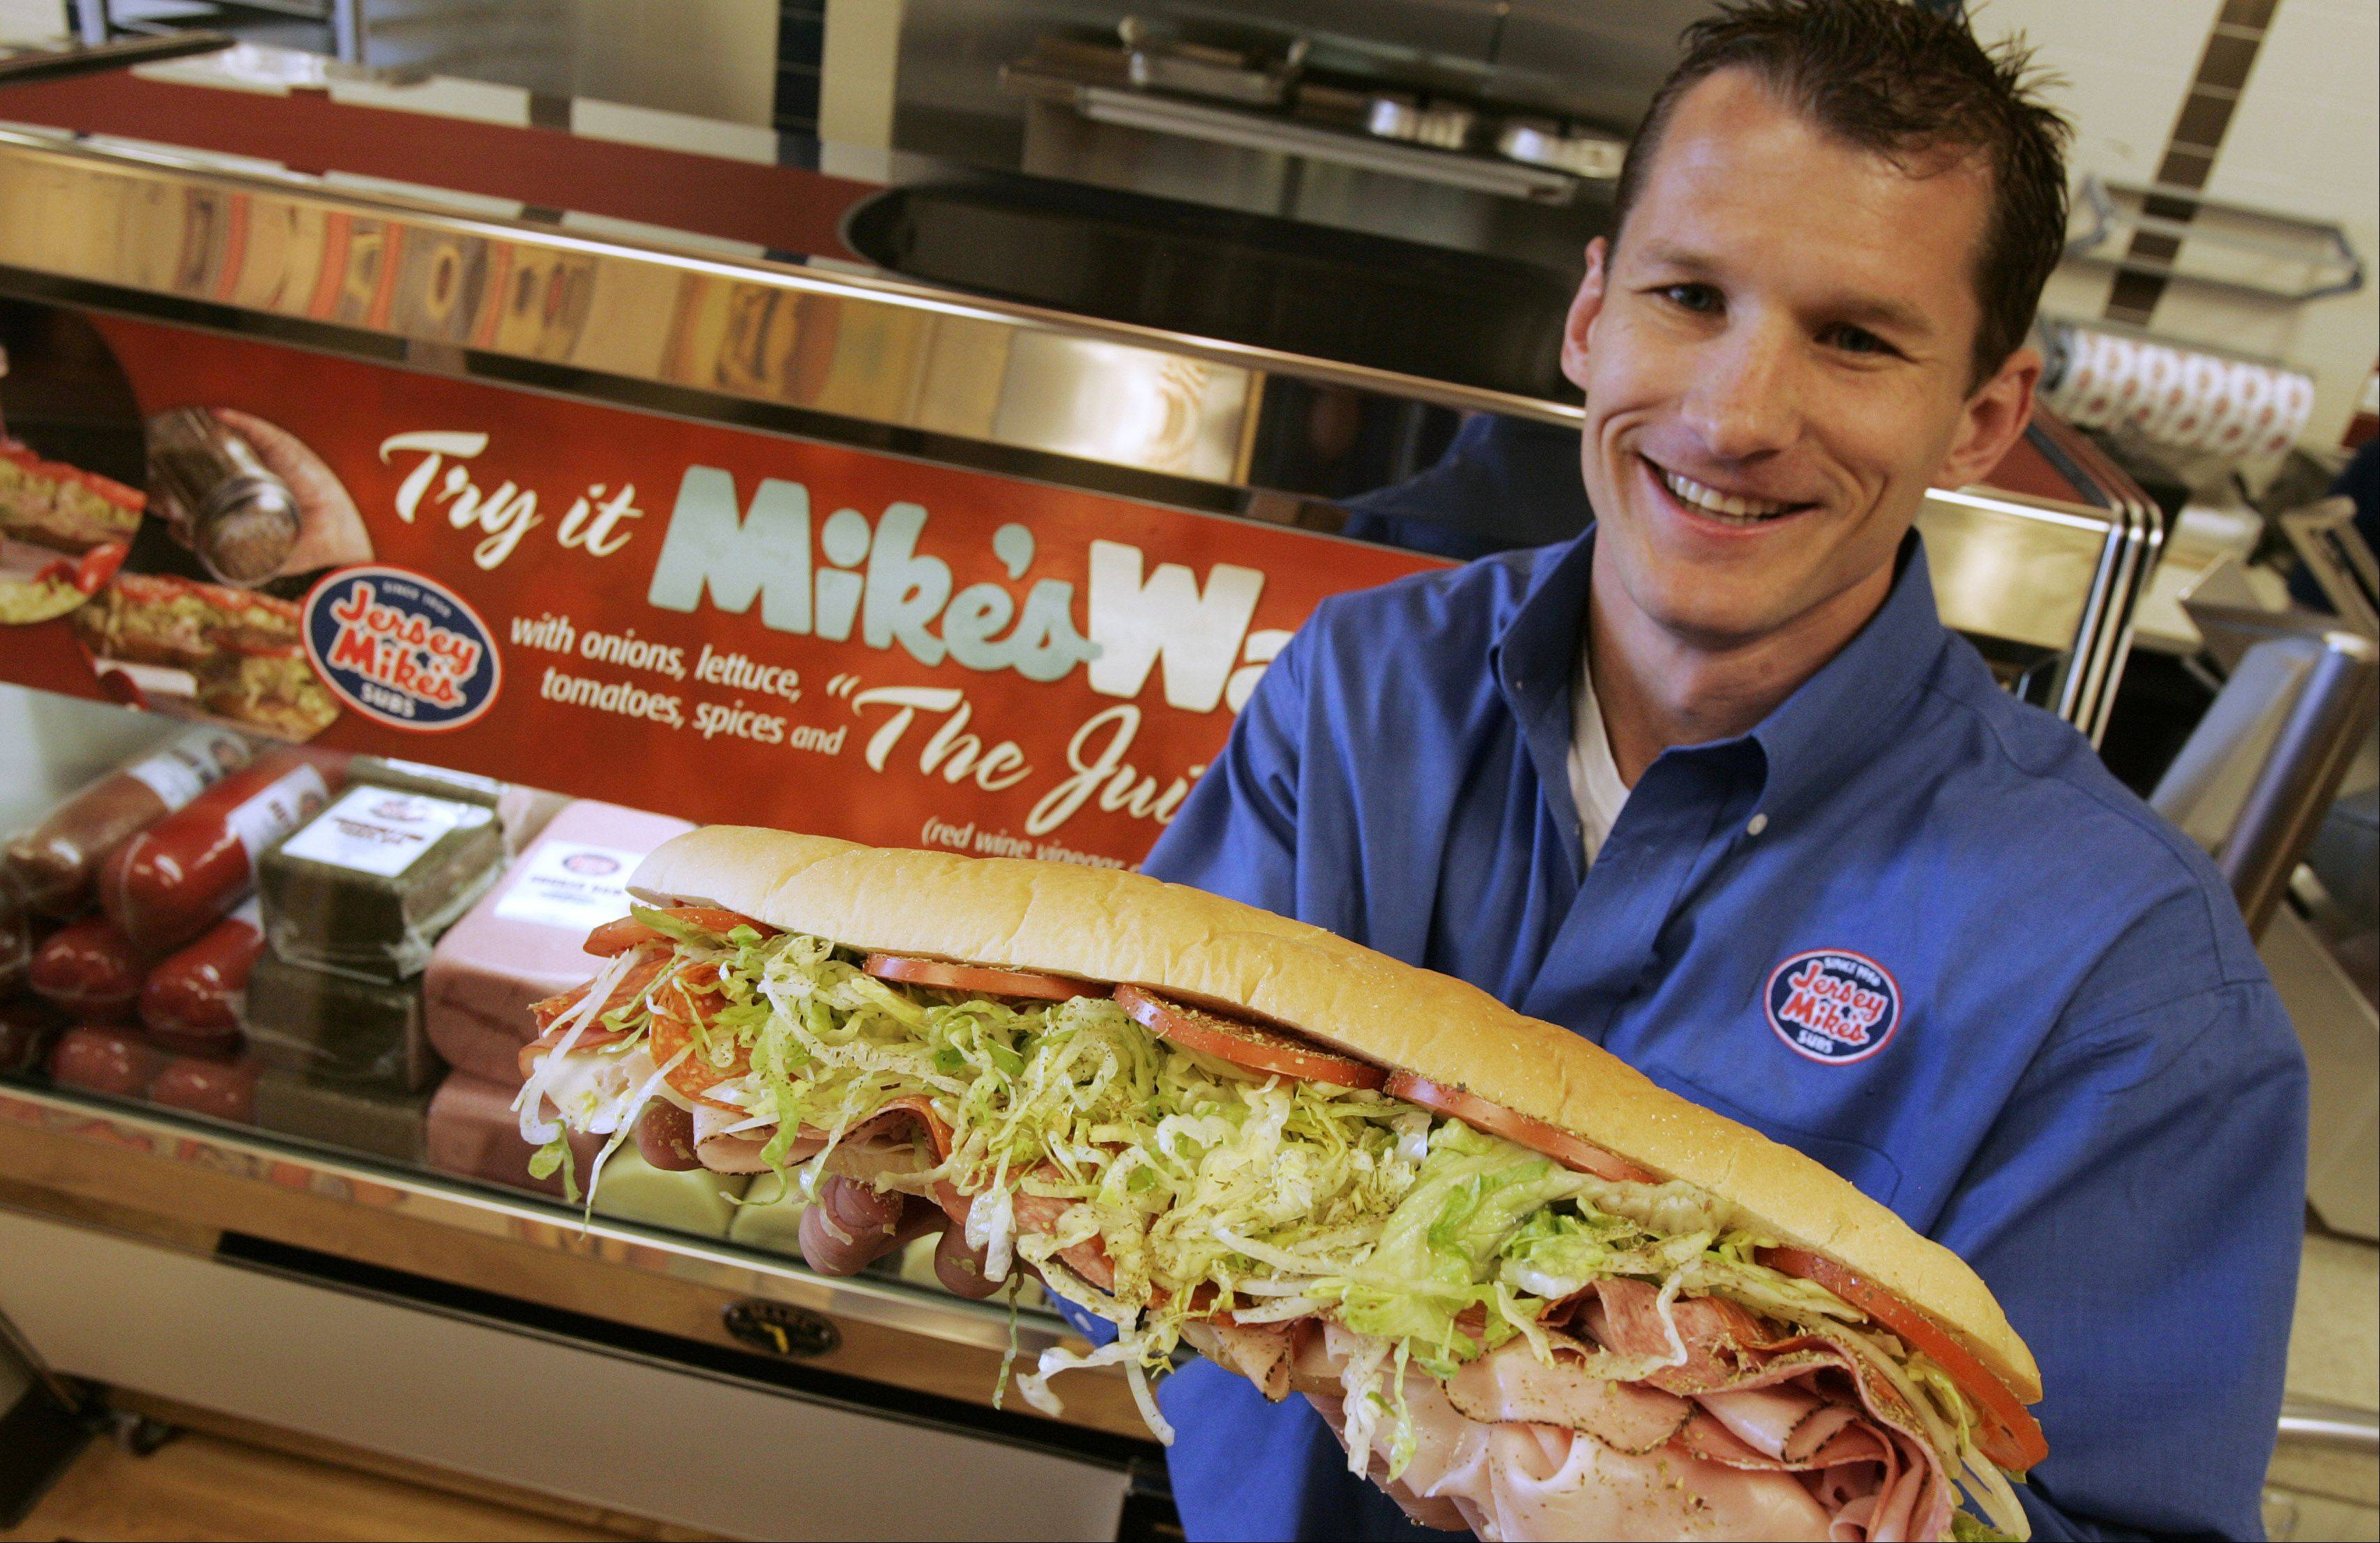 Mark Michalak is owner of Jersey Mike's Subs in Lake in the Hills and Crystal Lake. Jersey Mike's likes to partner with local organizations to hold fundraisers.